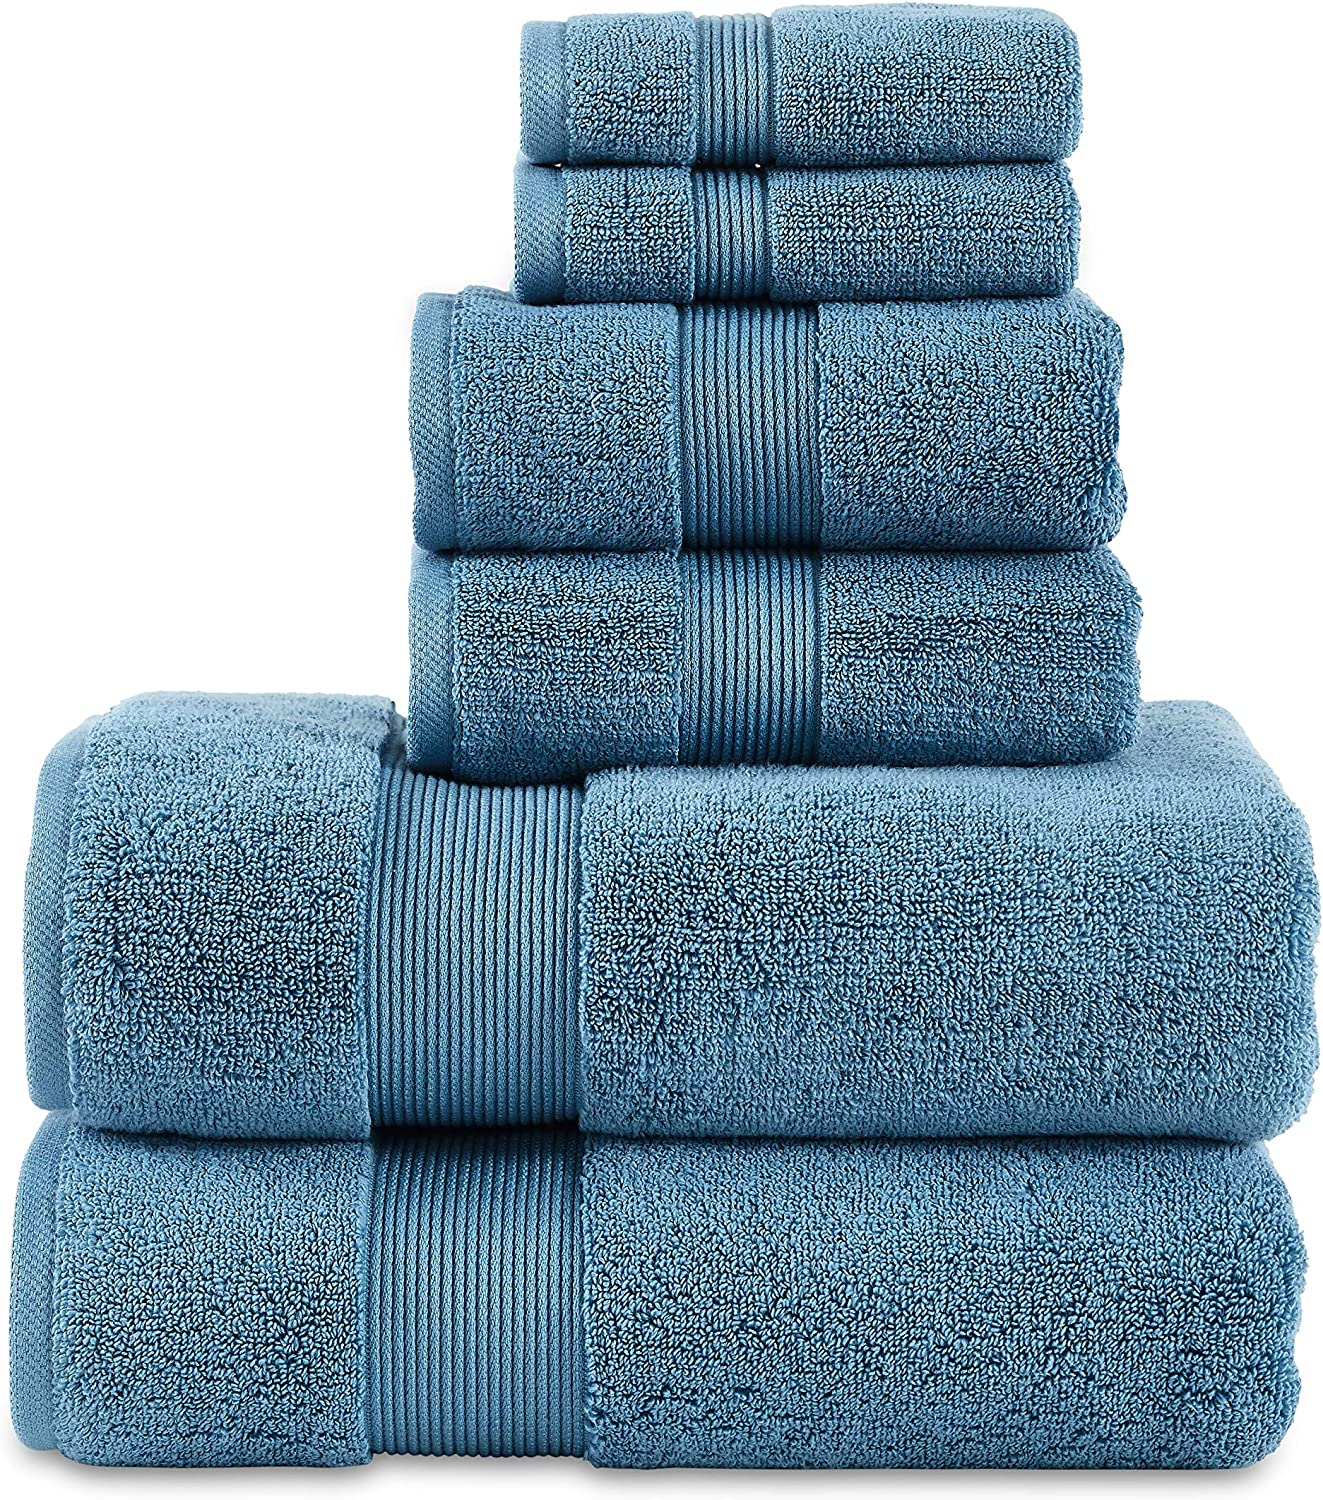 "703 GSM 6 Piece Towels Set, 100% Cotton, Zero Twist, Premium Hotel & Spa Quality, Highly Absorbent, 2 Bath Towels 30"" x 54"", 2 Hand Towel 16"" x 28"" and 2 Wash Cloth 12"" x 12"". Teal Color"